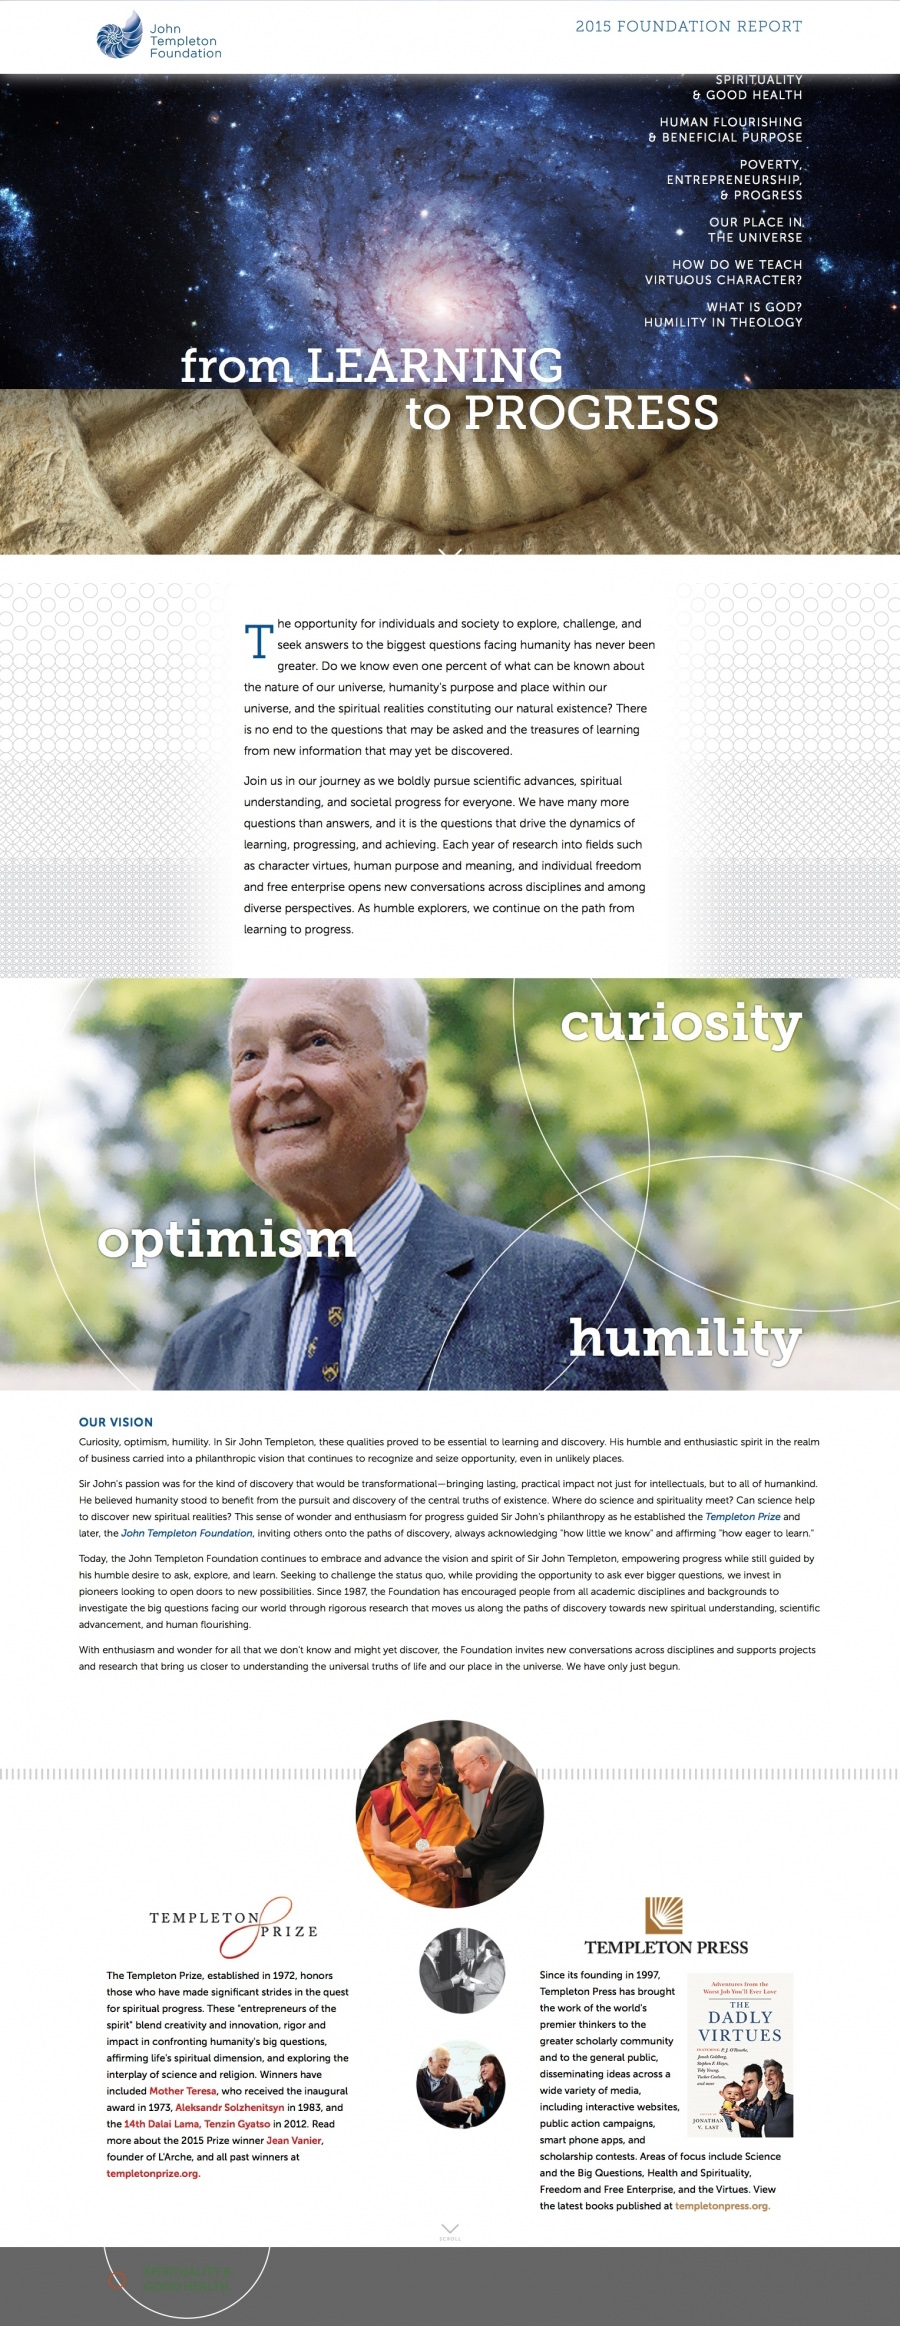 Templeton Foundation Annual Report